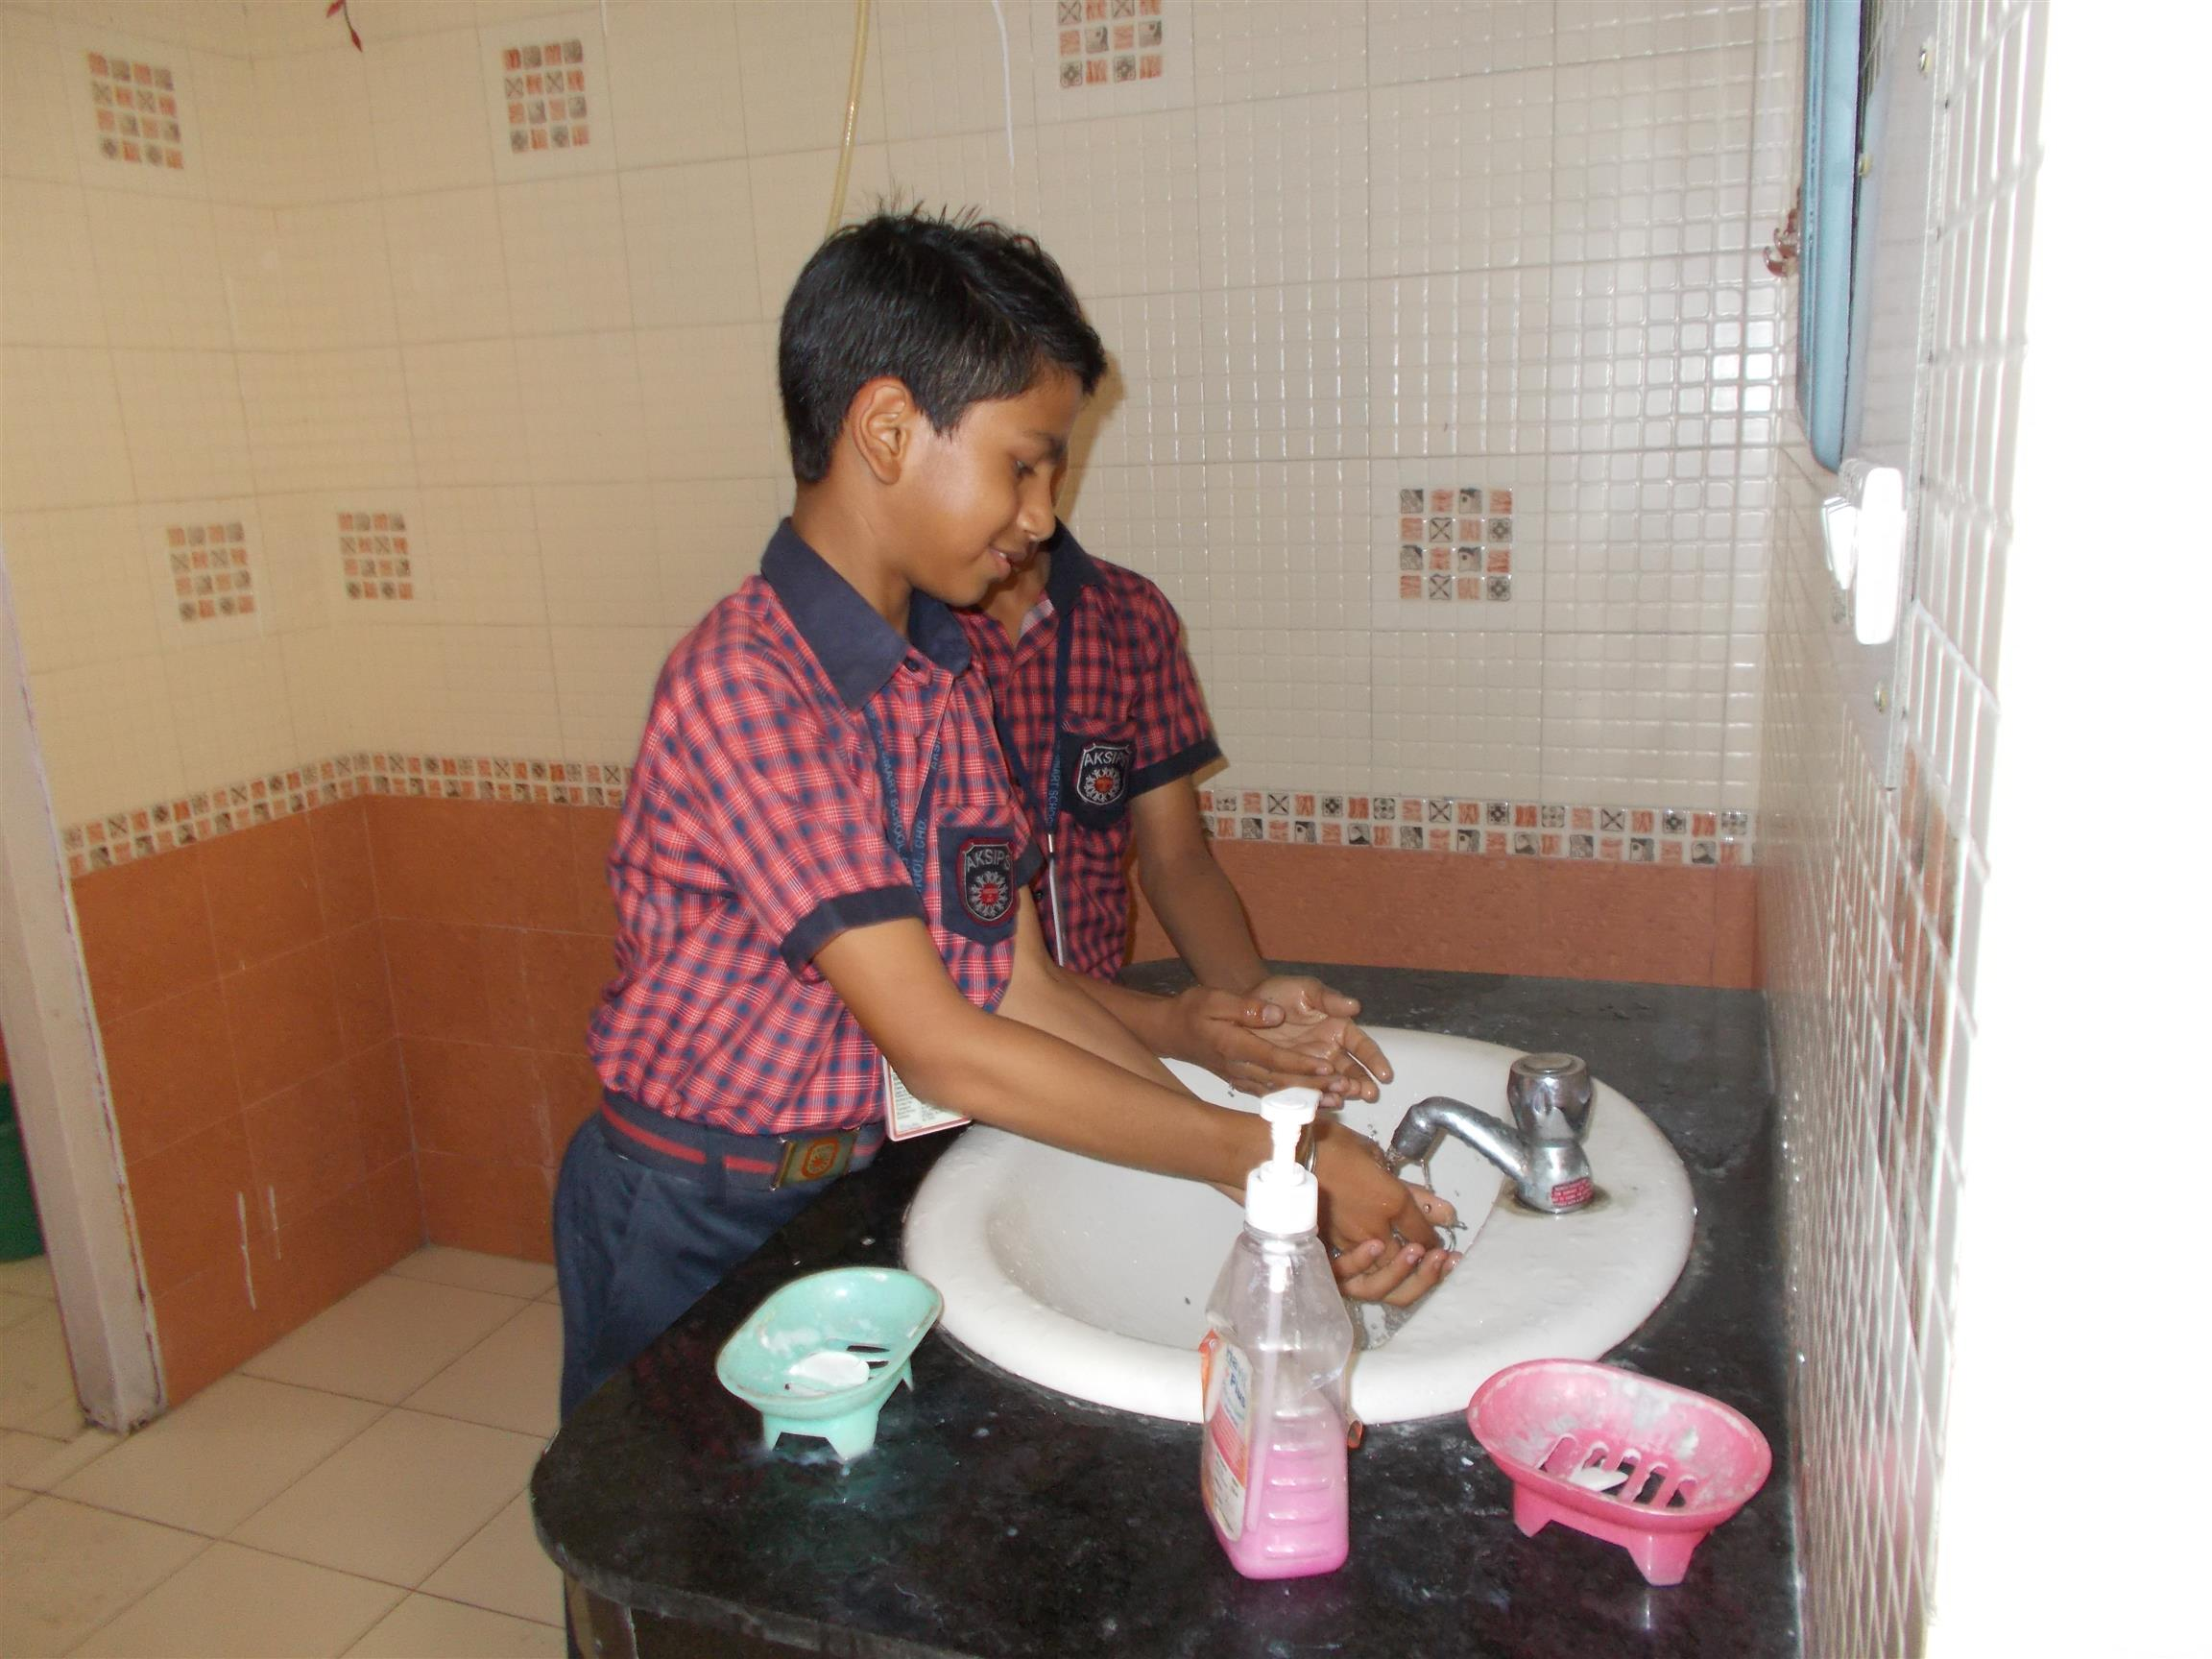 Hand Wash Activity | AKSIPS 45 Chandigarh